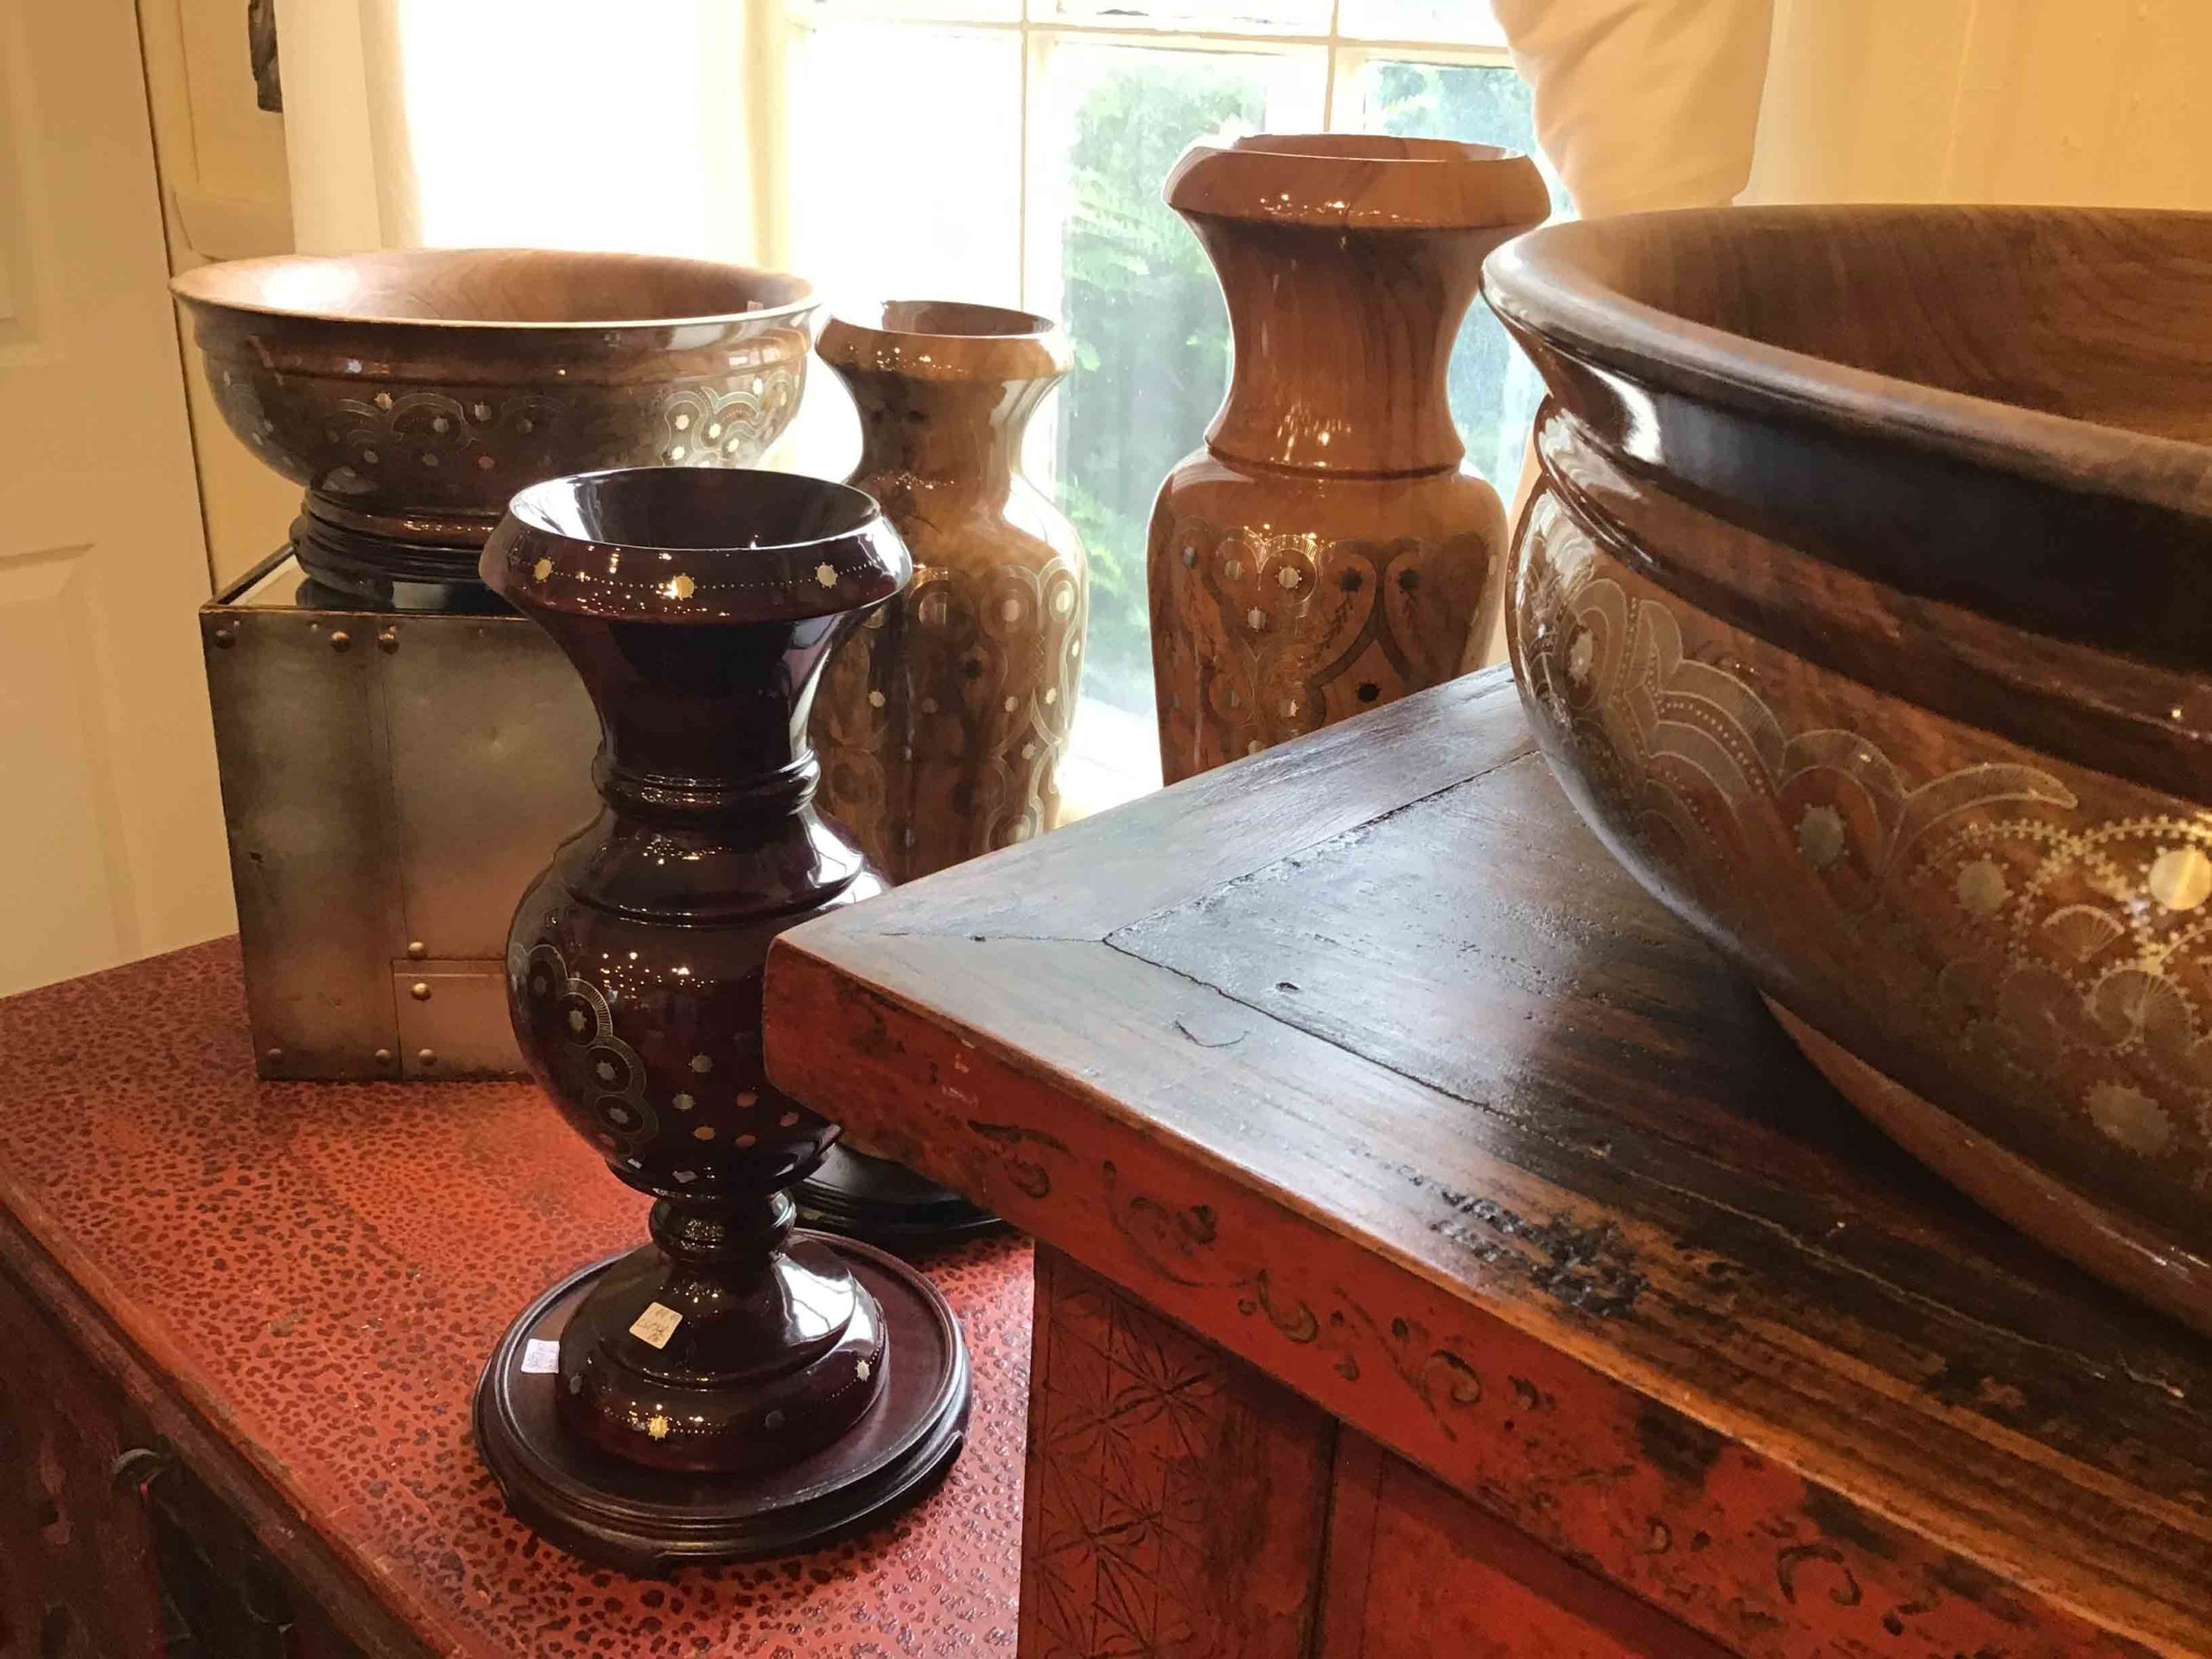 Great Finds & Design Antique & New Furnishings & More